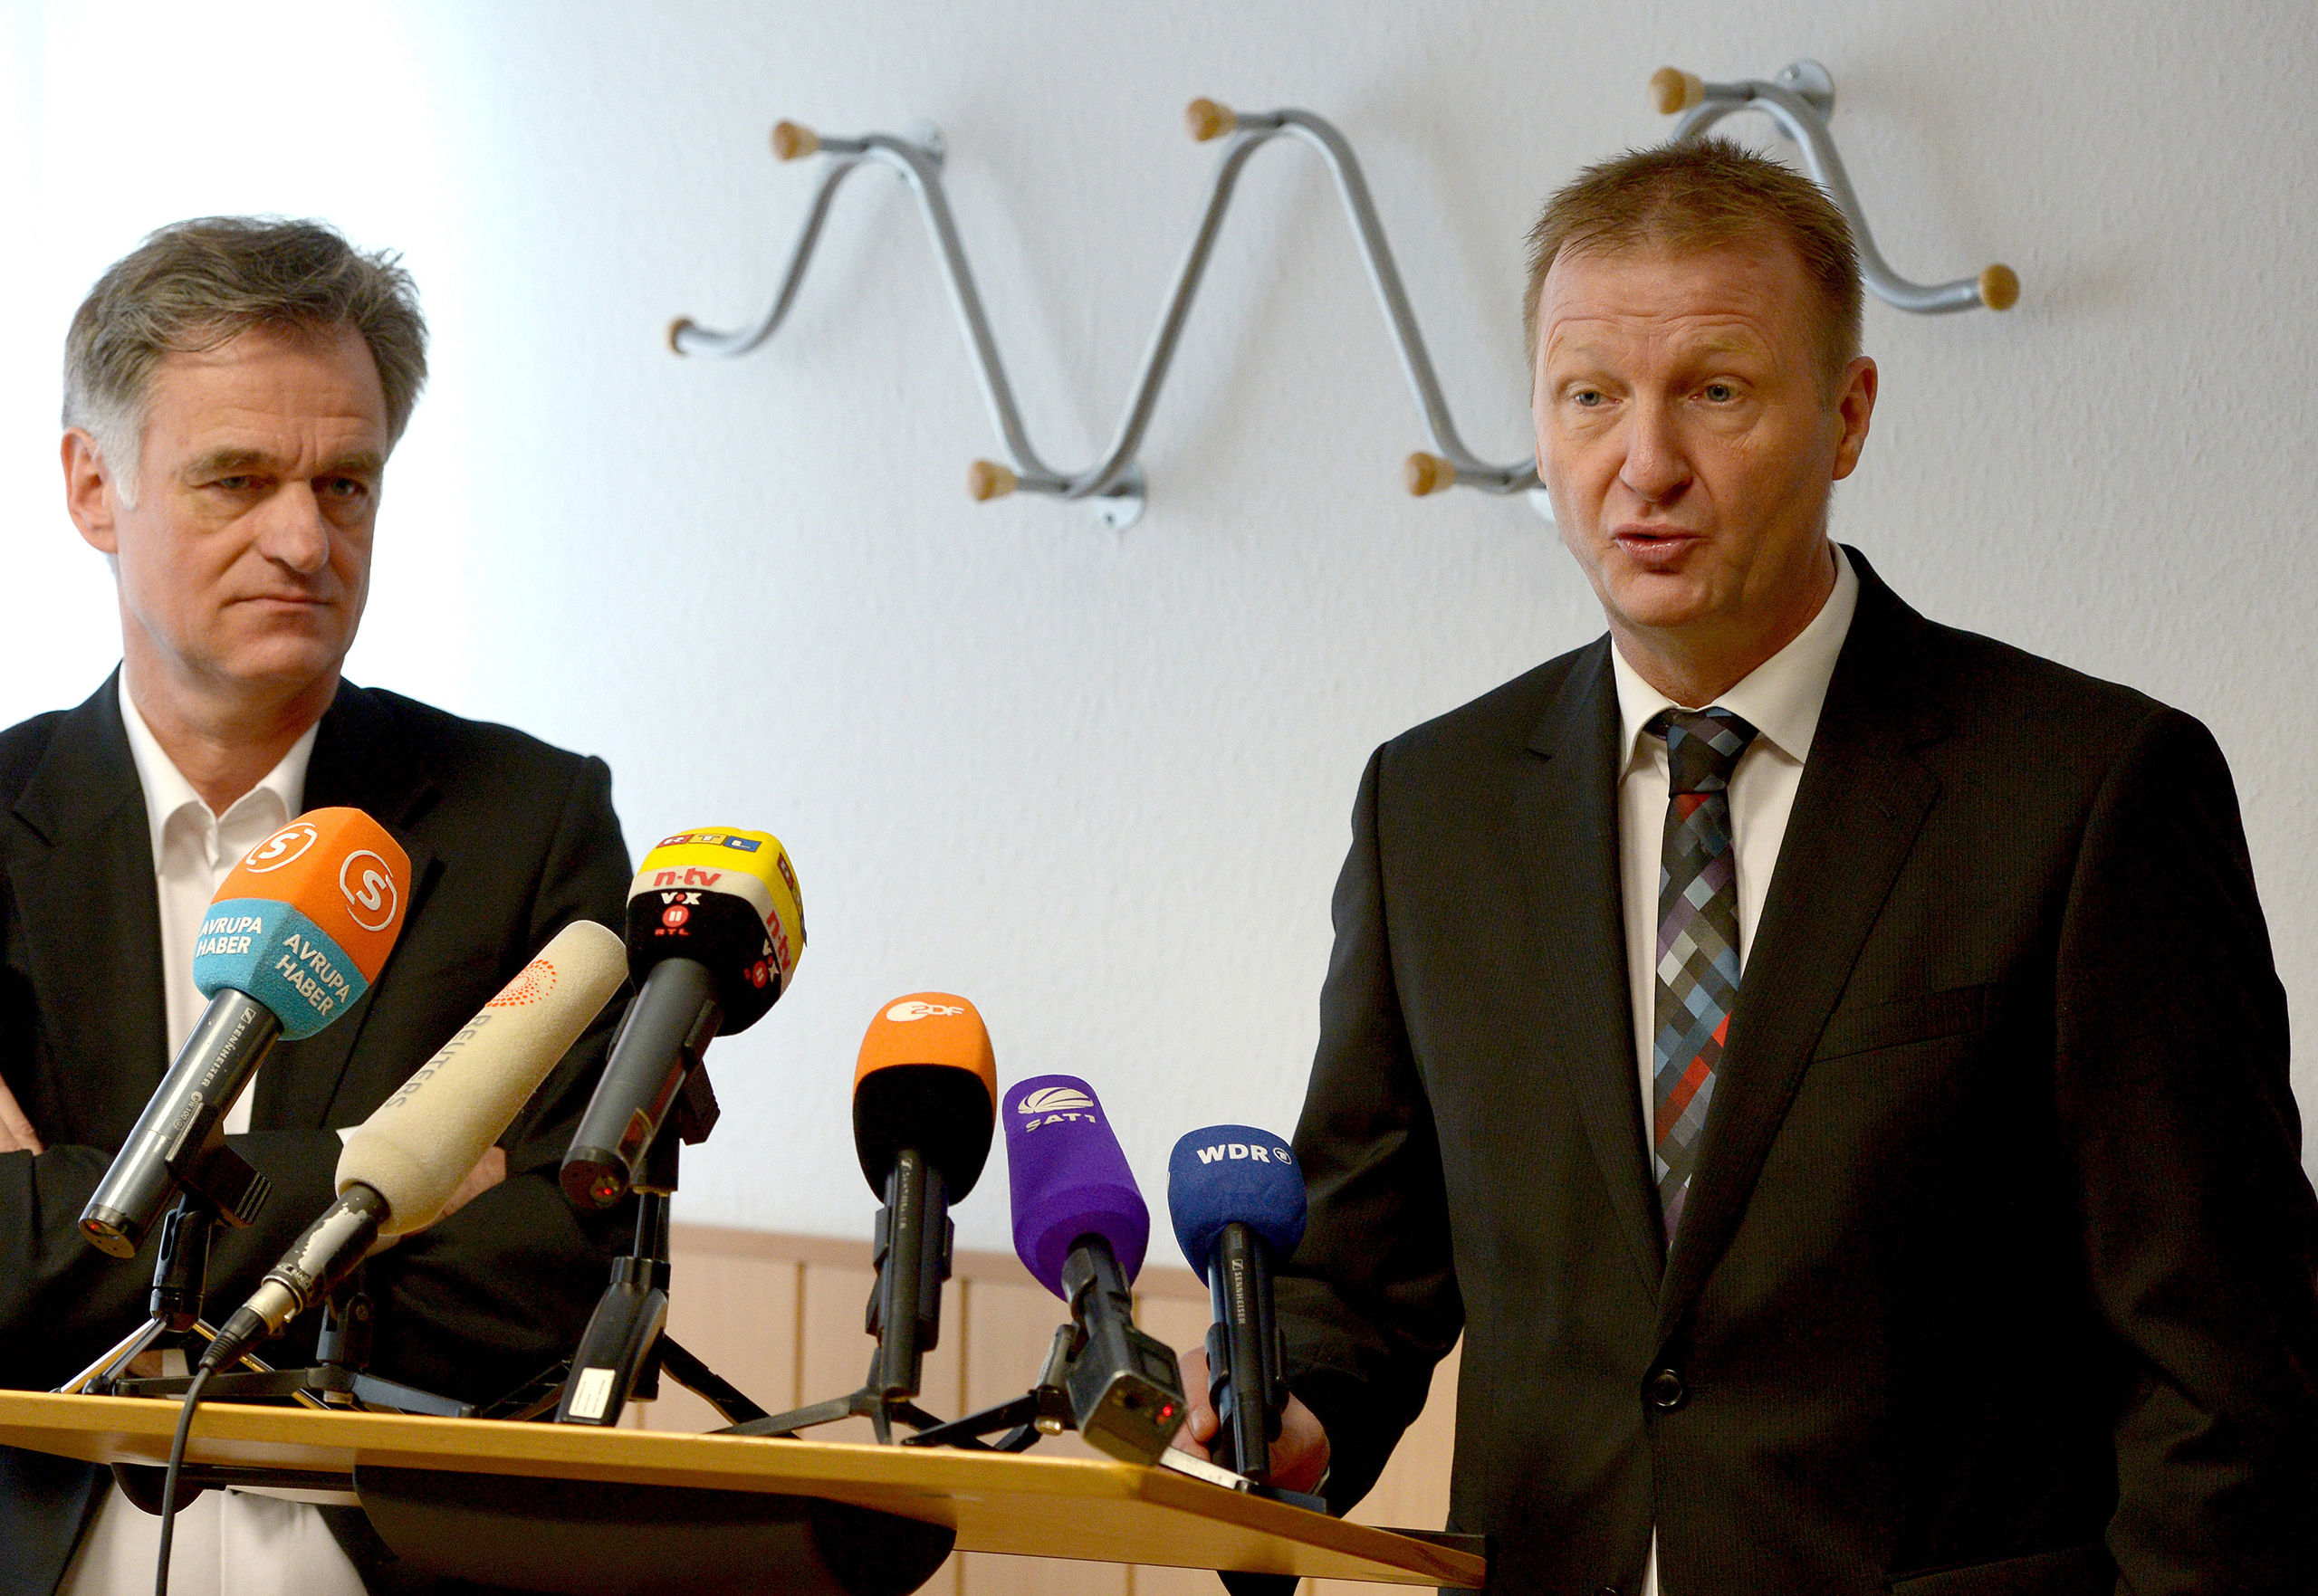 Dirk Sauerborn, left, stands next to North Rhine-Westphalia Interior Minister Ralf Jäger during a news conference on the intervention project Wegweiser, or Signpost, in Dusseldorf, Germany, March 24, 2014.